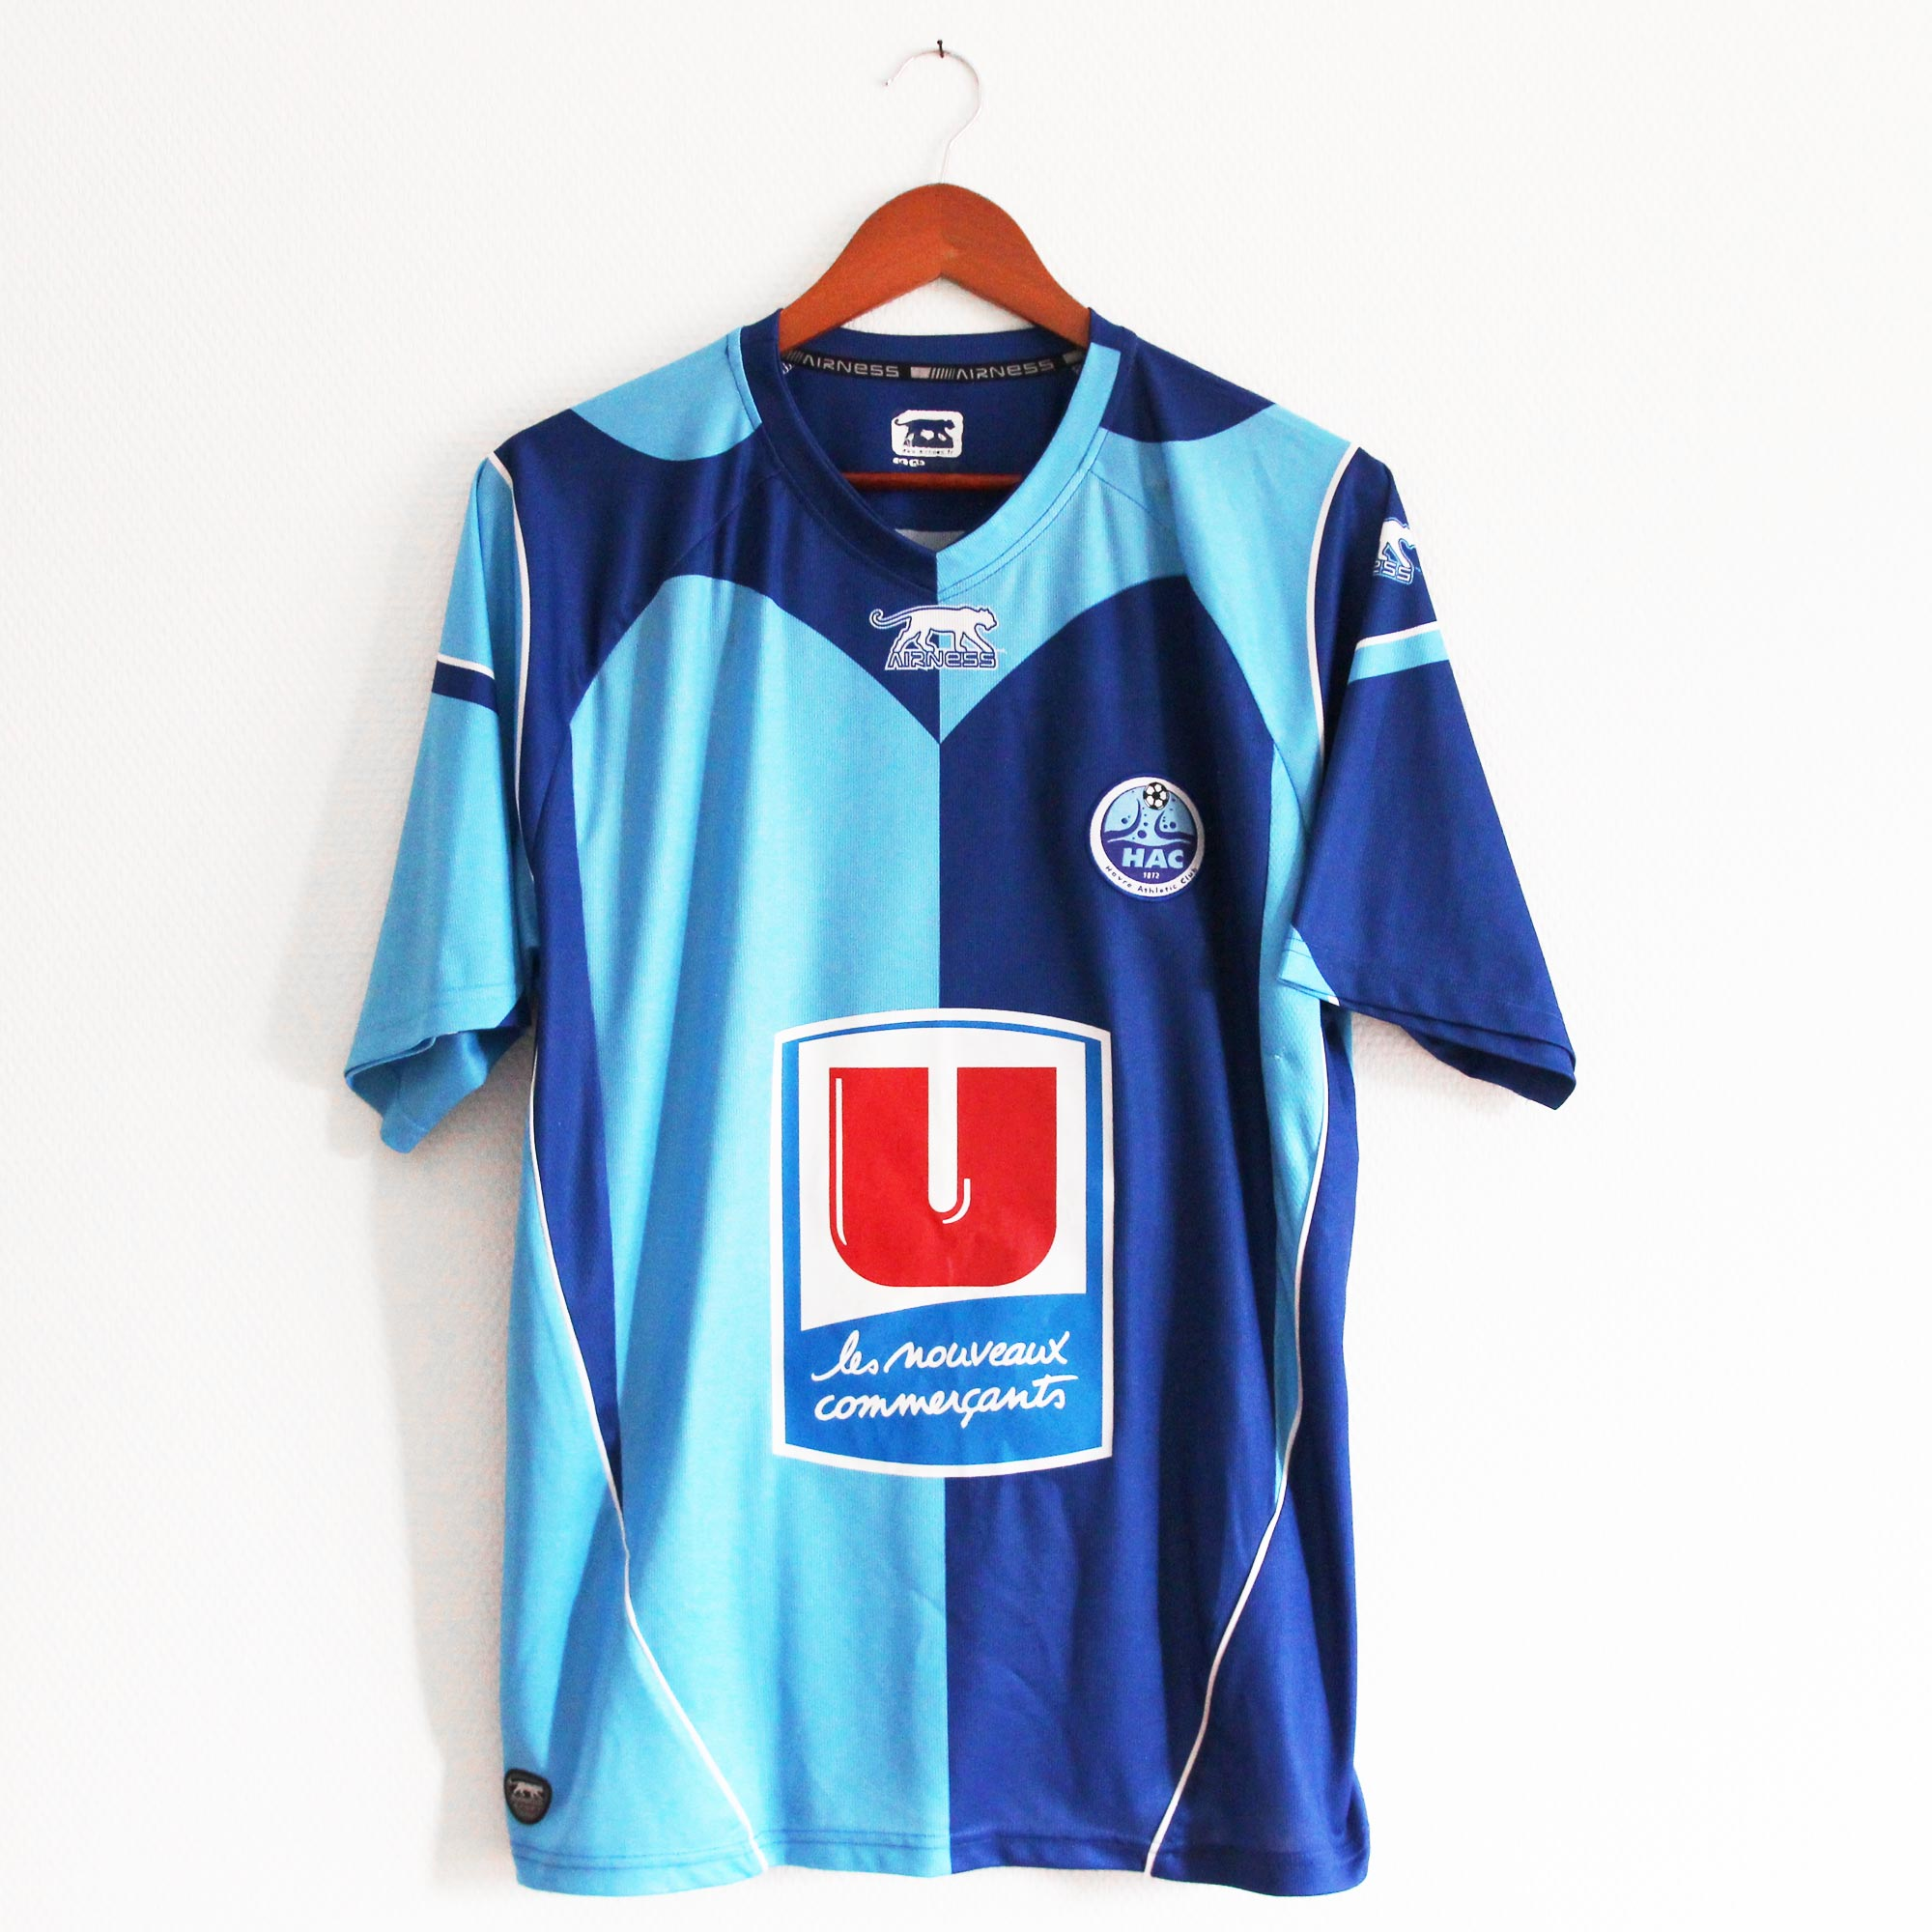 maillot le havre ariness 2008 2009